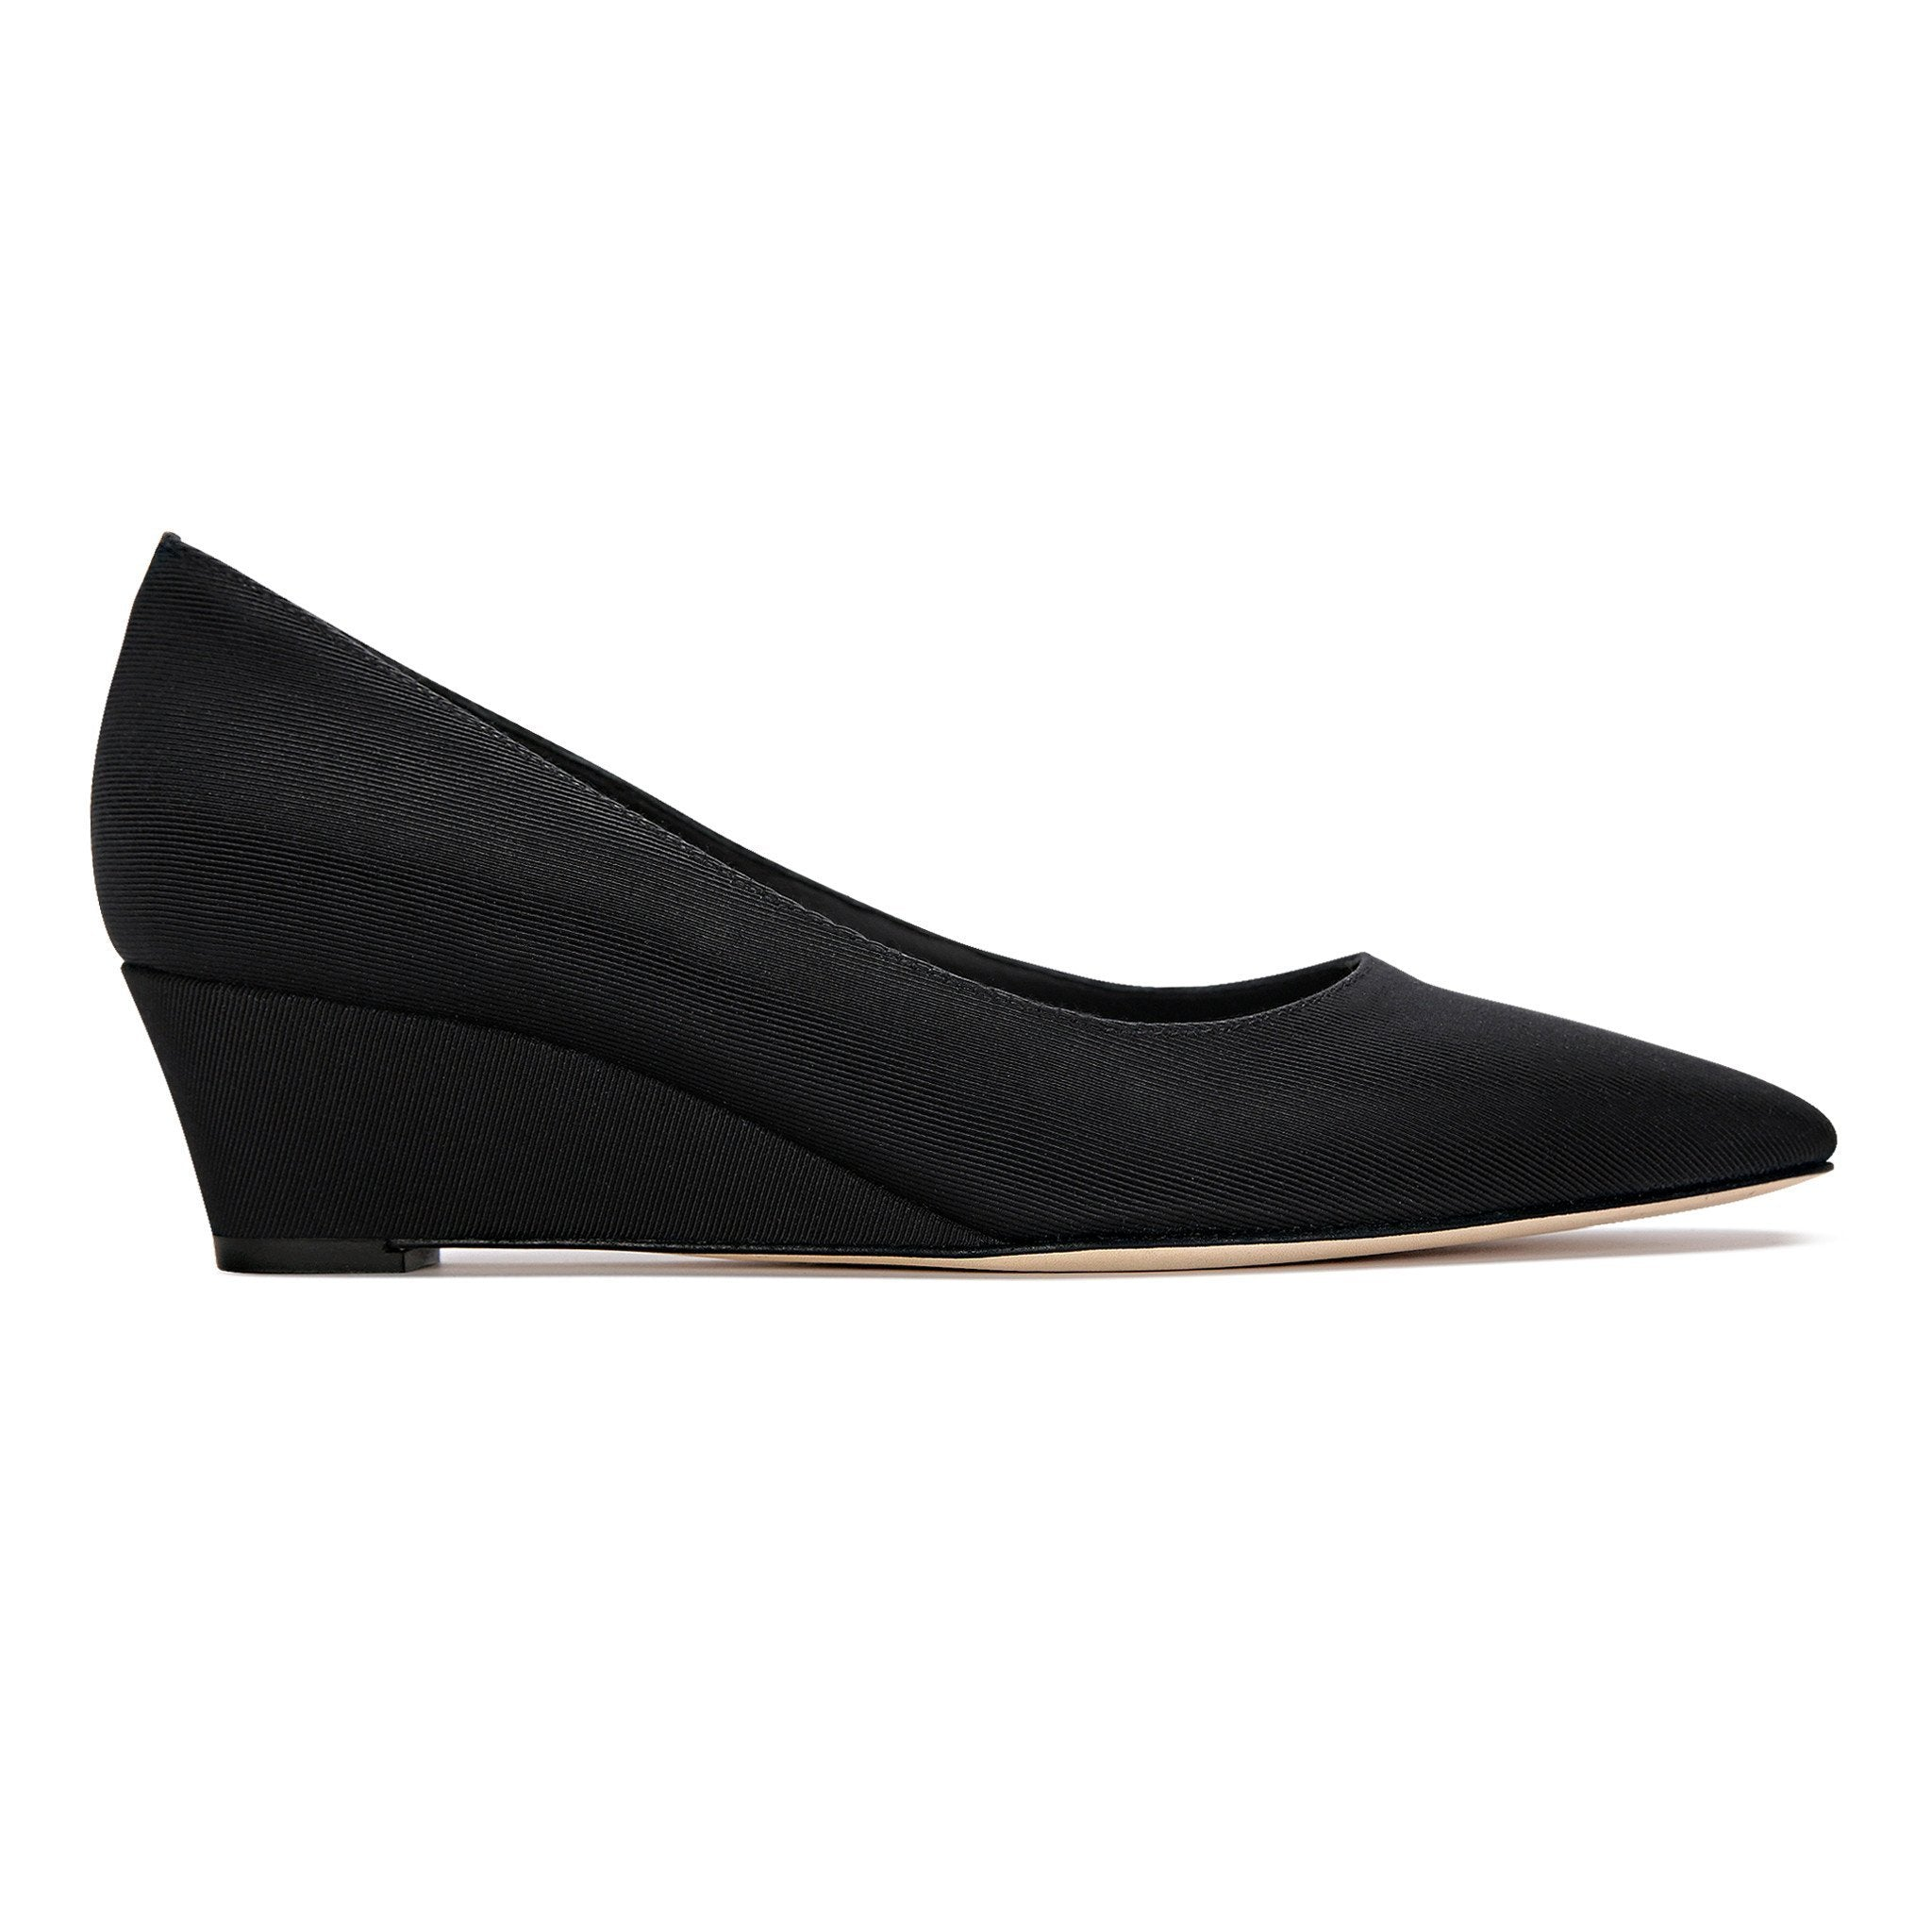 TRENTO - Grosgrain Nero, VIAJIYU - Women's Hand Made Sustainable Luxury Shoes. Made in Italy. Made to Order.